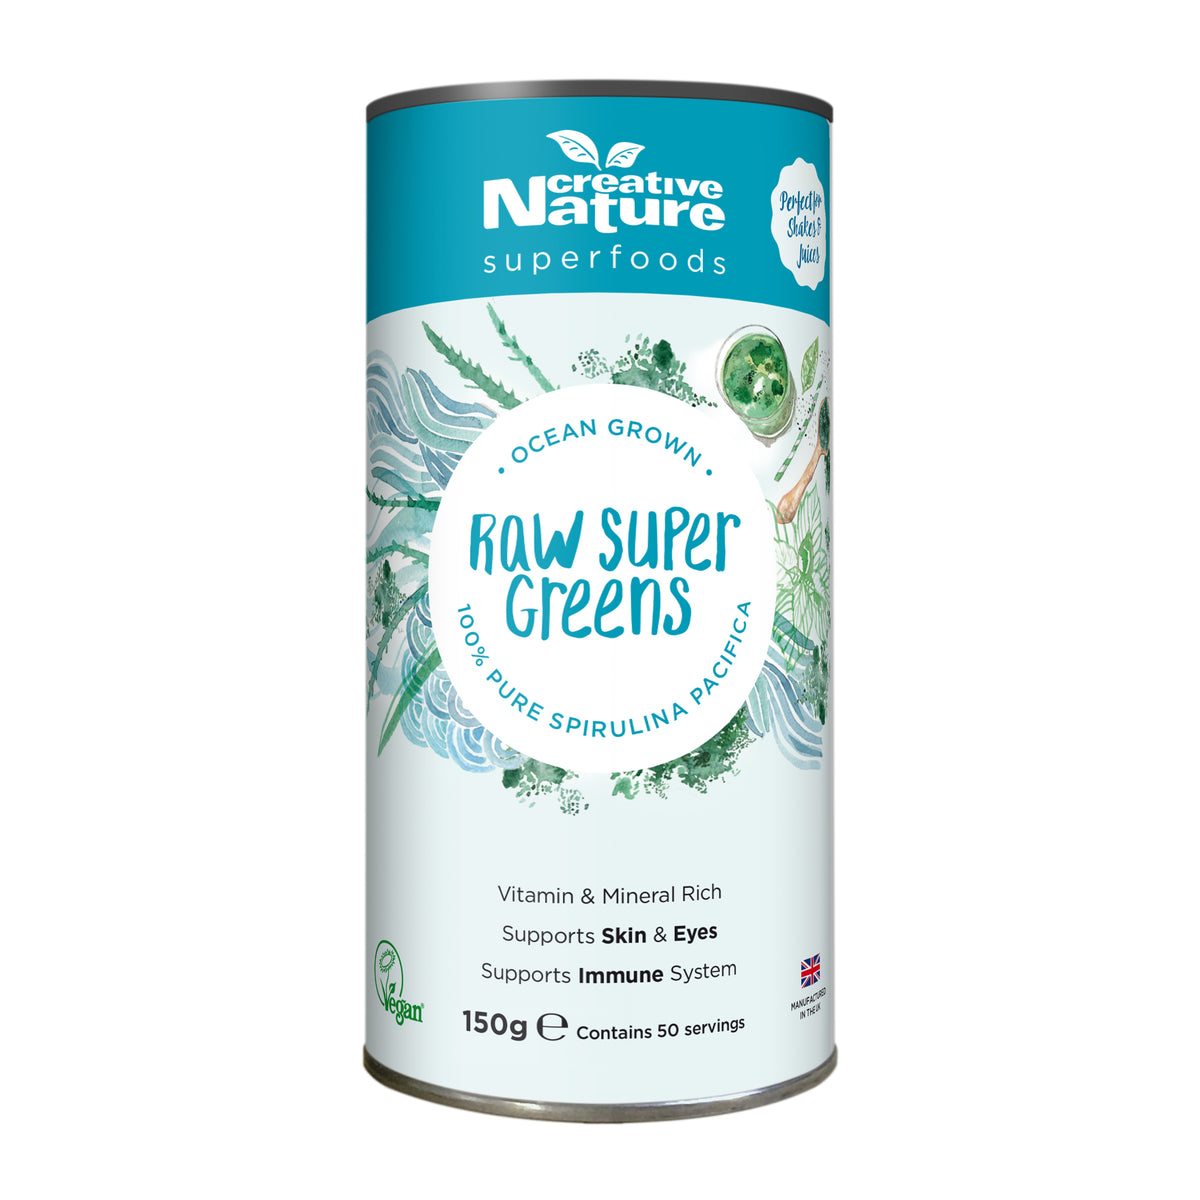 Creative Nature Hawaiian Spirulina Powder (300g)